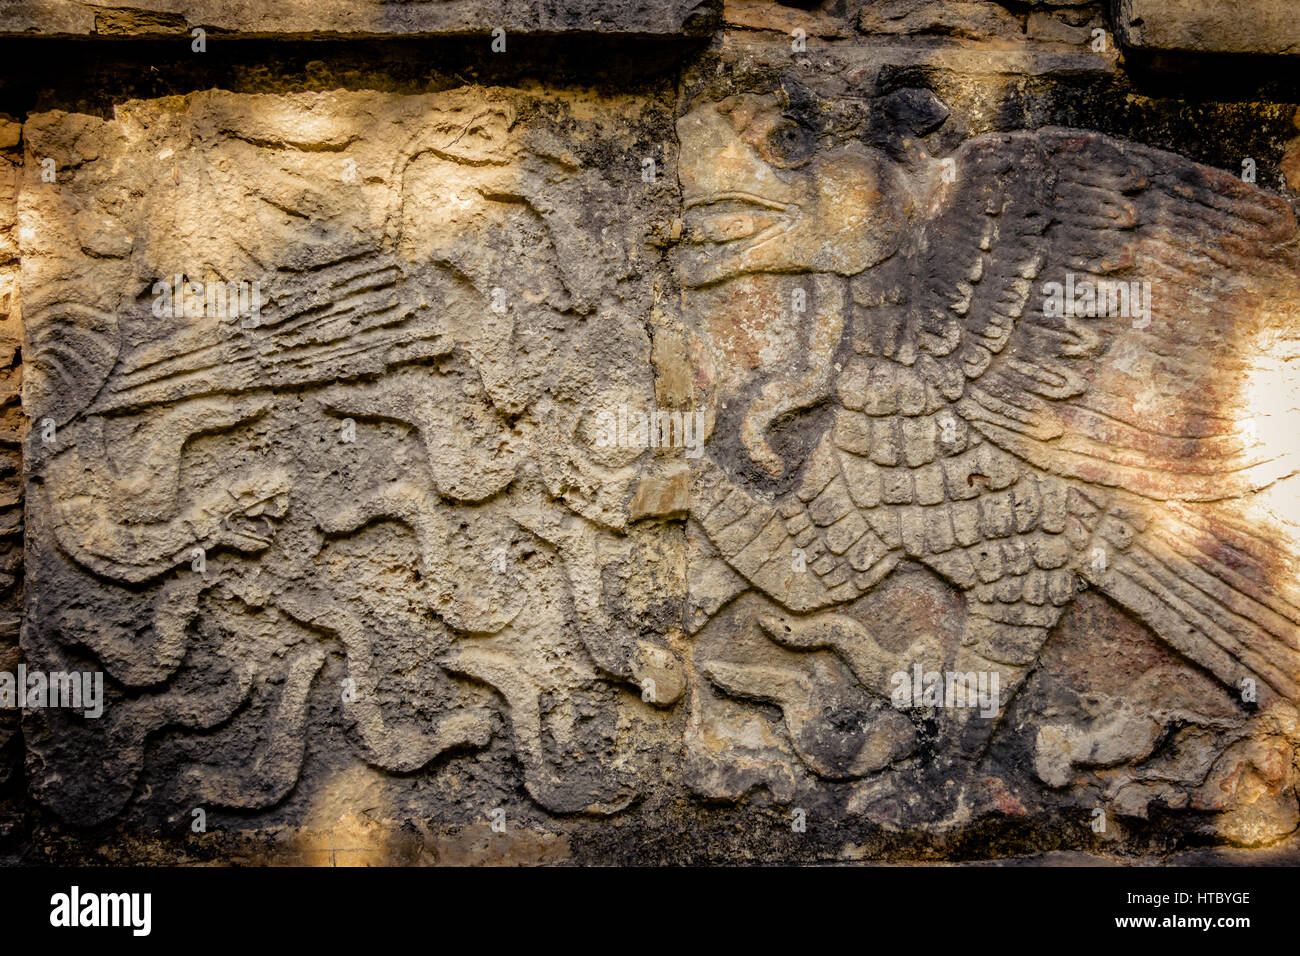 Carvings in the Venus Platform at Ancient Maya Ruins of Chichen Itza - Yucatan, Mexico - Stock Image